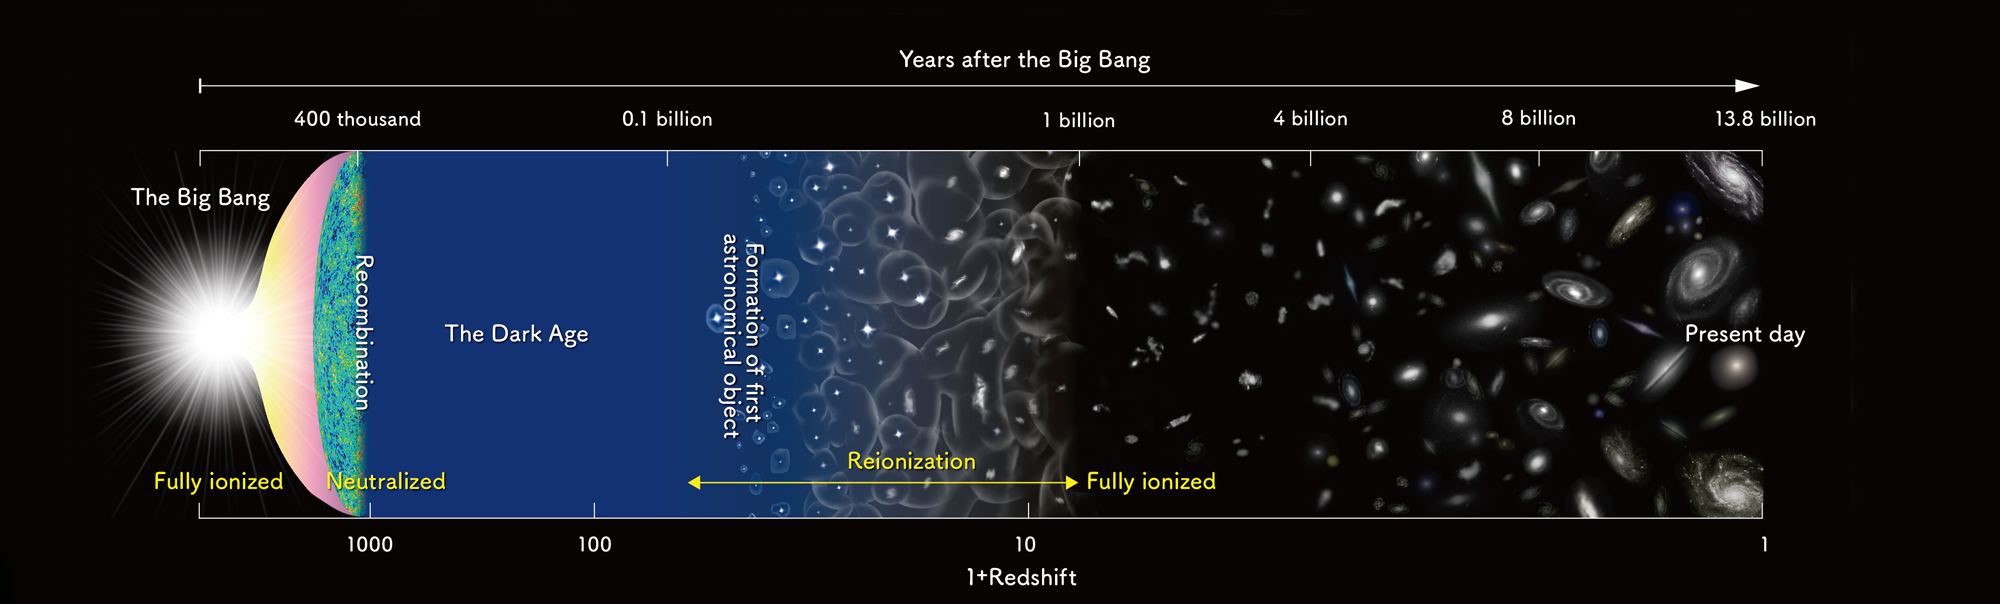 The First Billion Years - Part 2